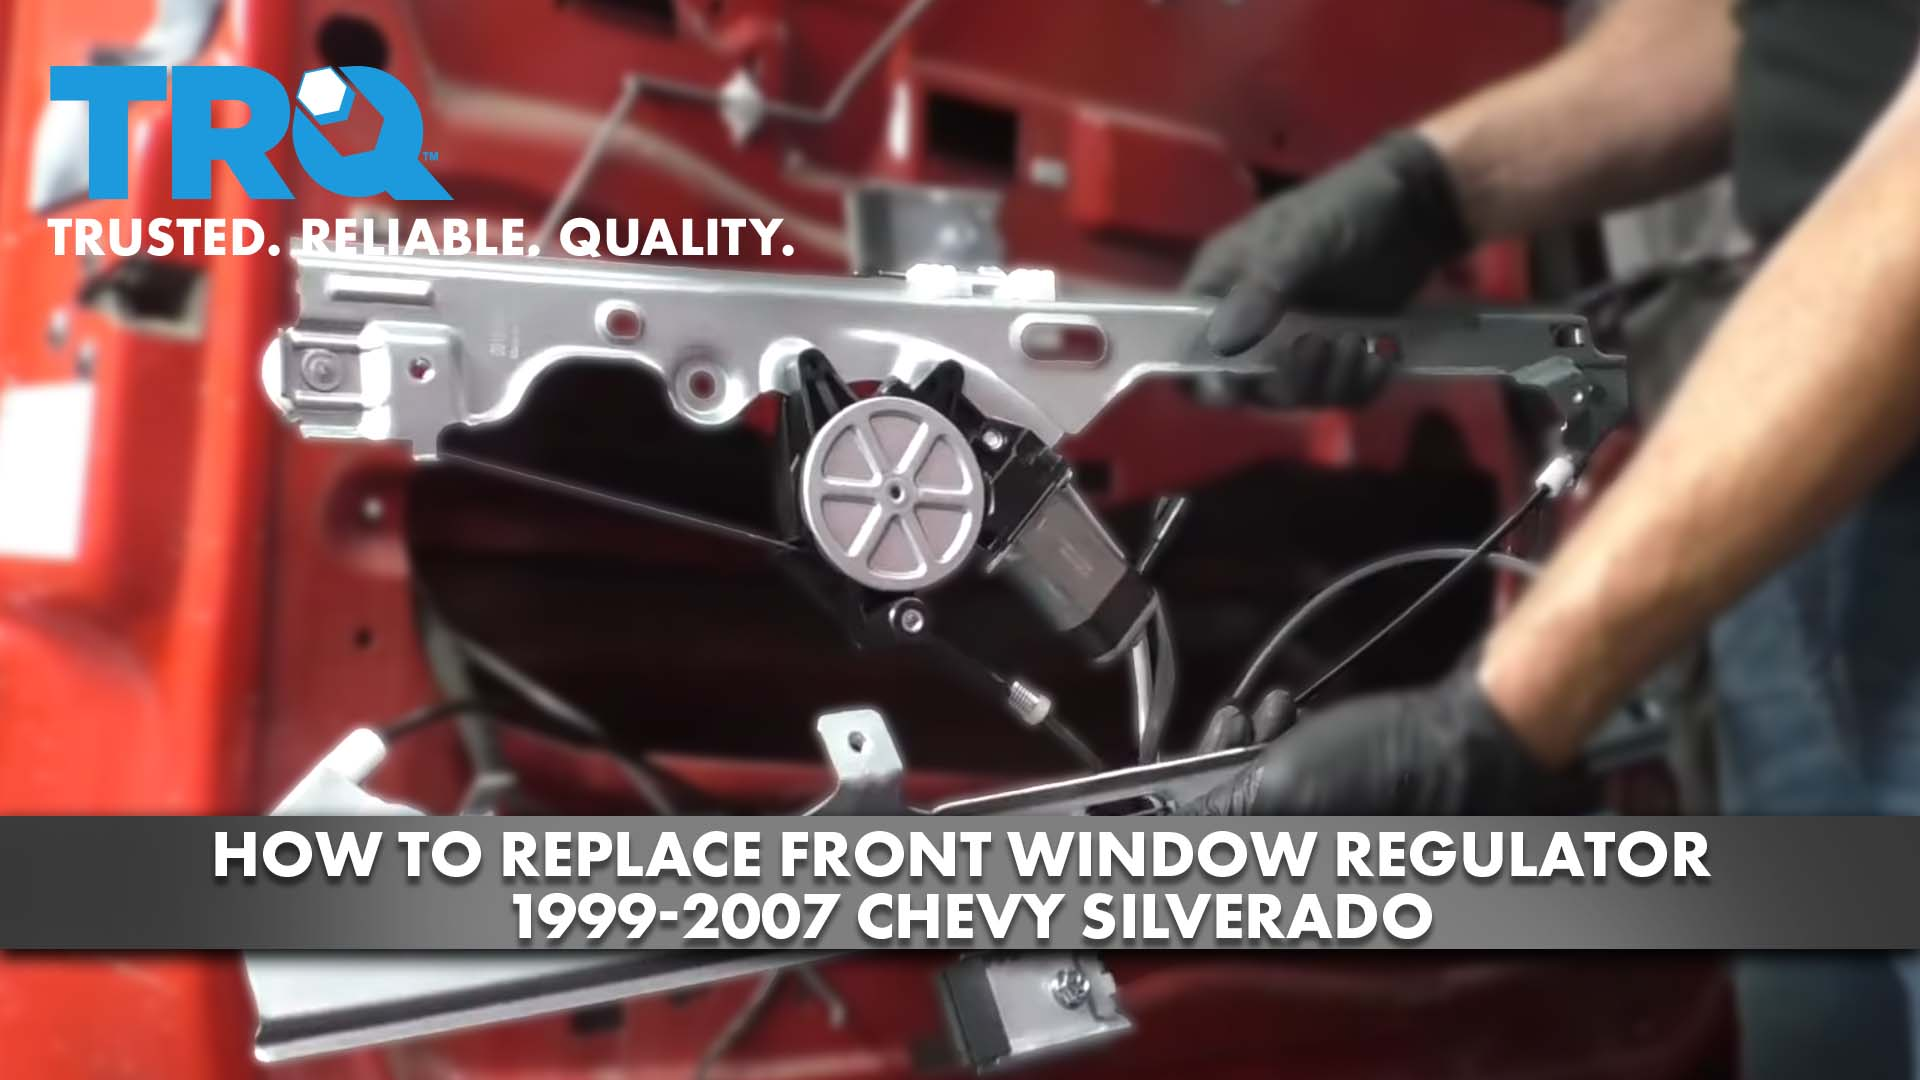 How to Replace Front Window Regulator 1999-07 Chevy Silverado